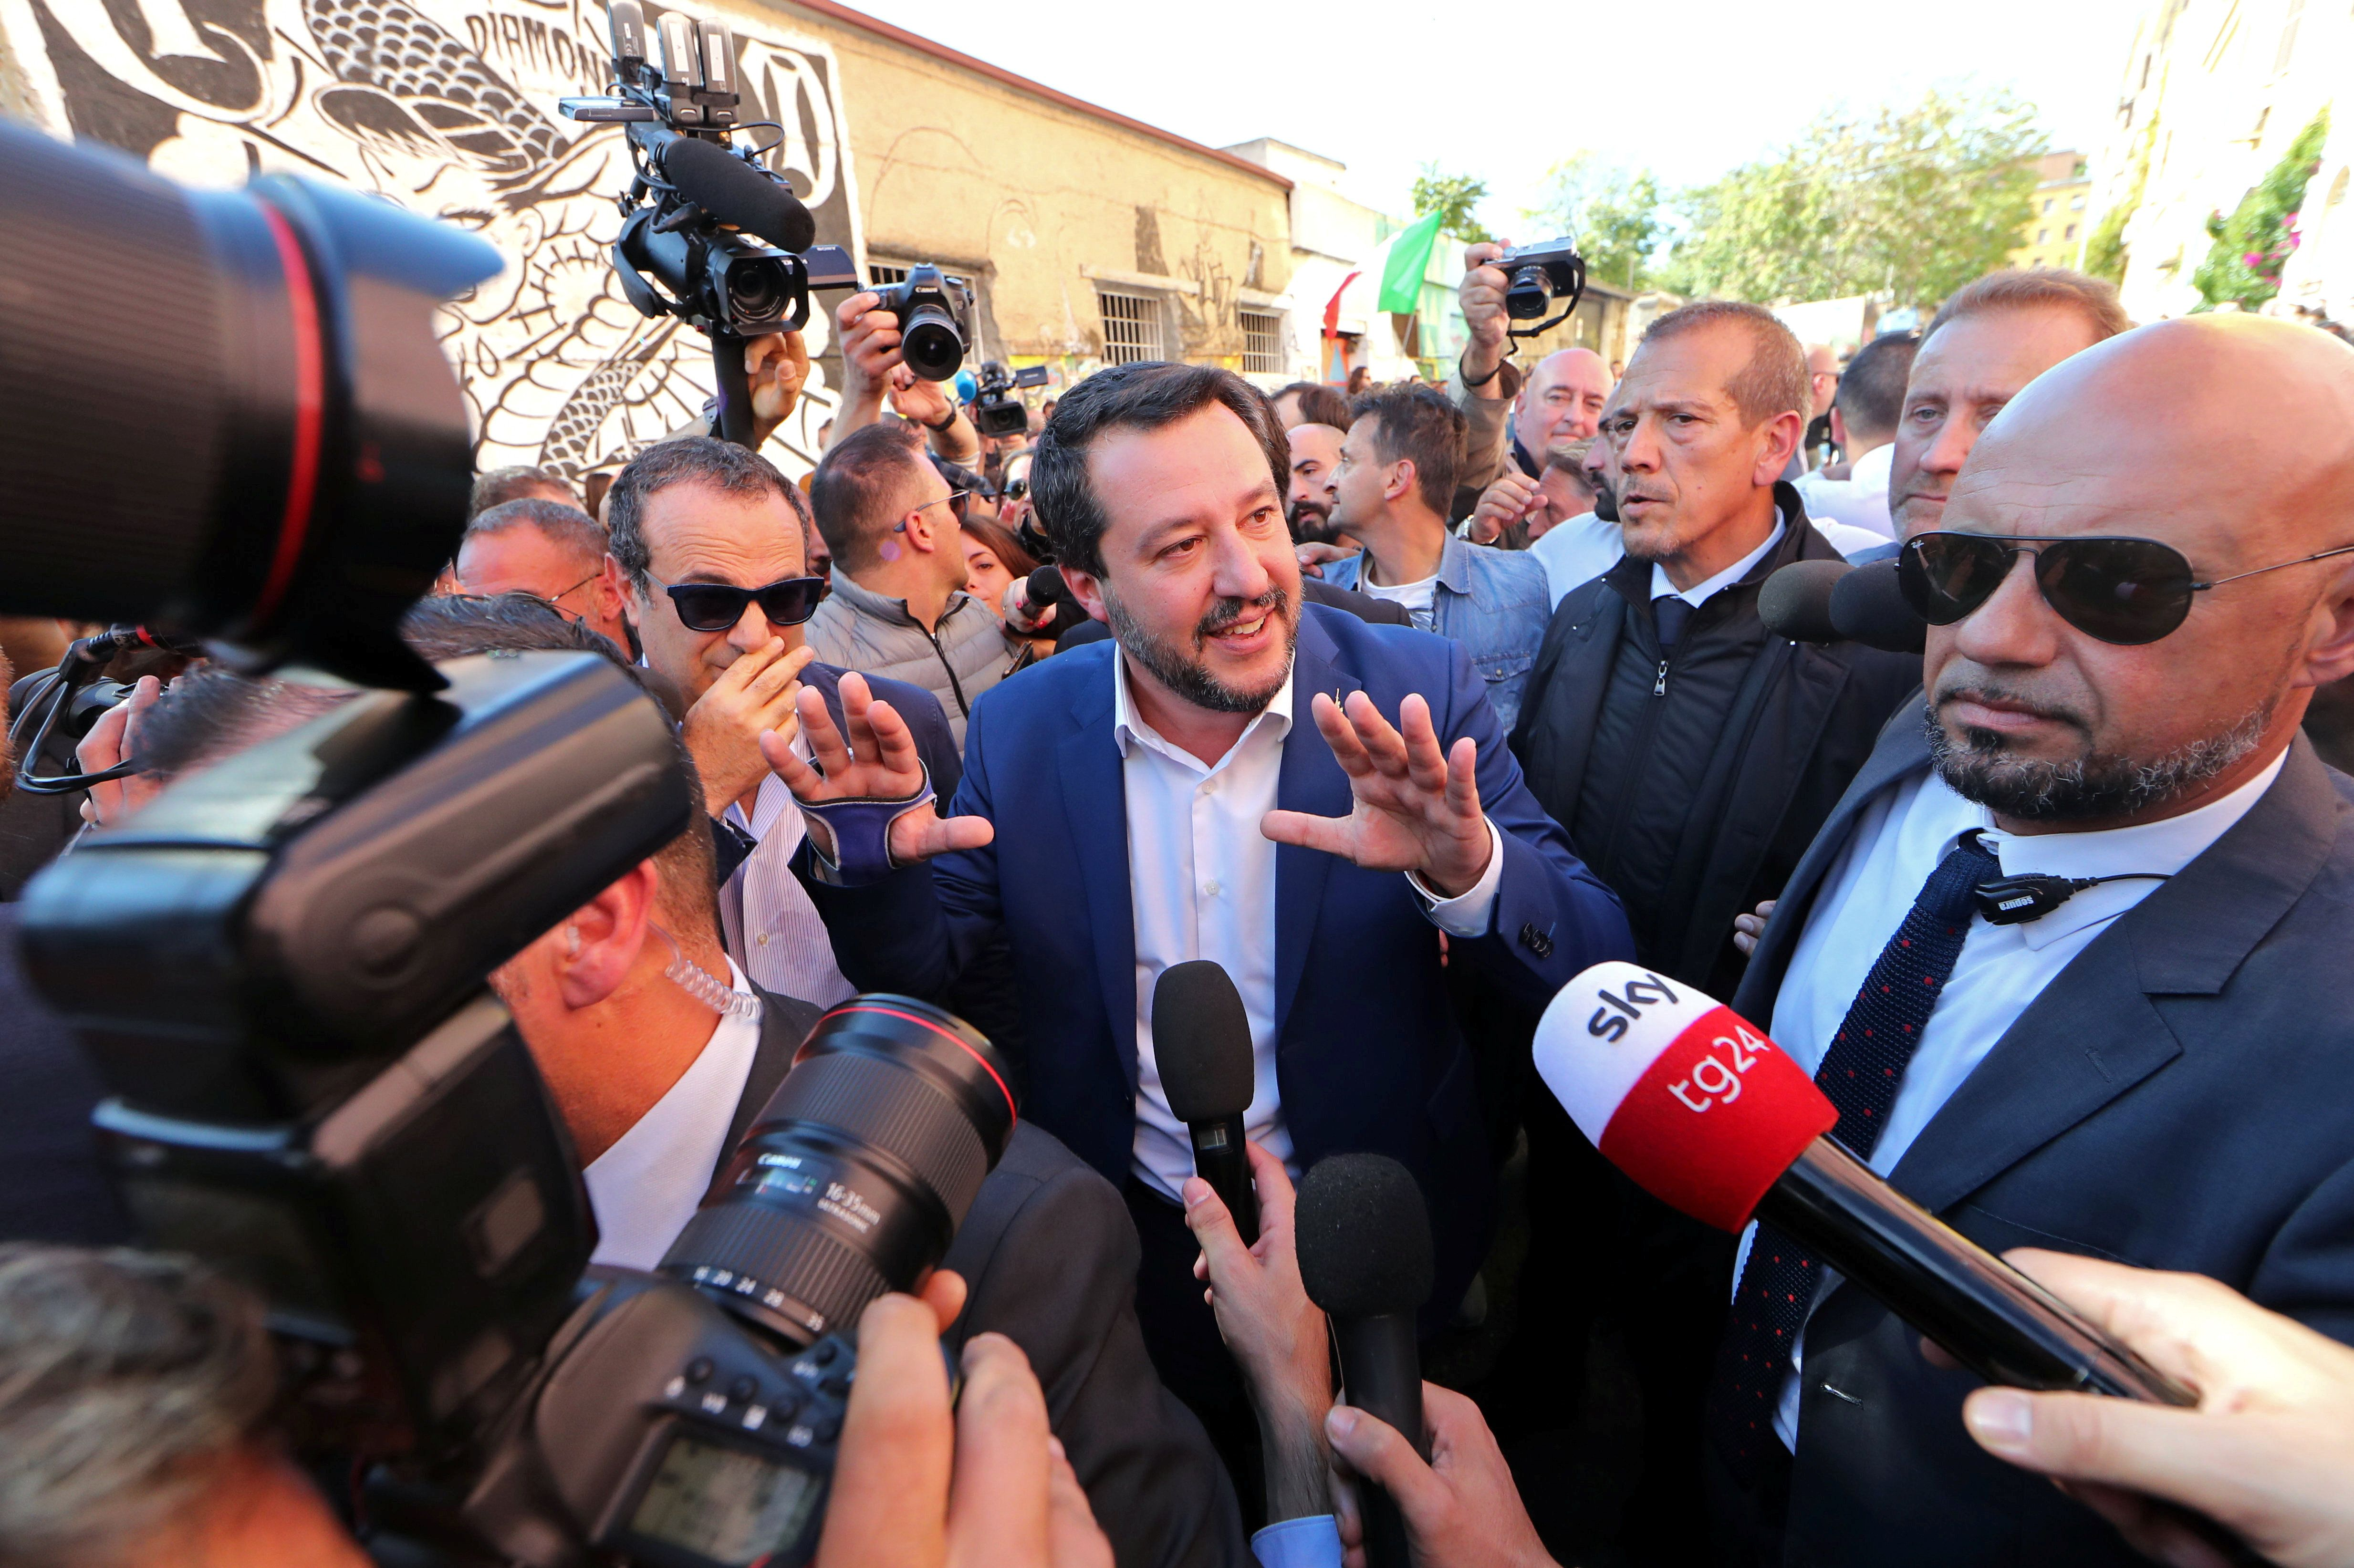 IN THE KEY OF THREE: A POPULISM UPDATE FROM ITALY